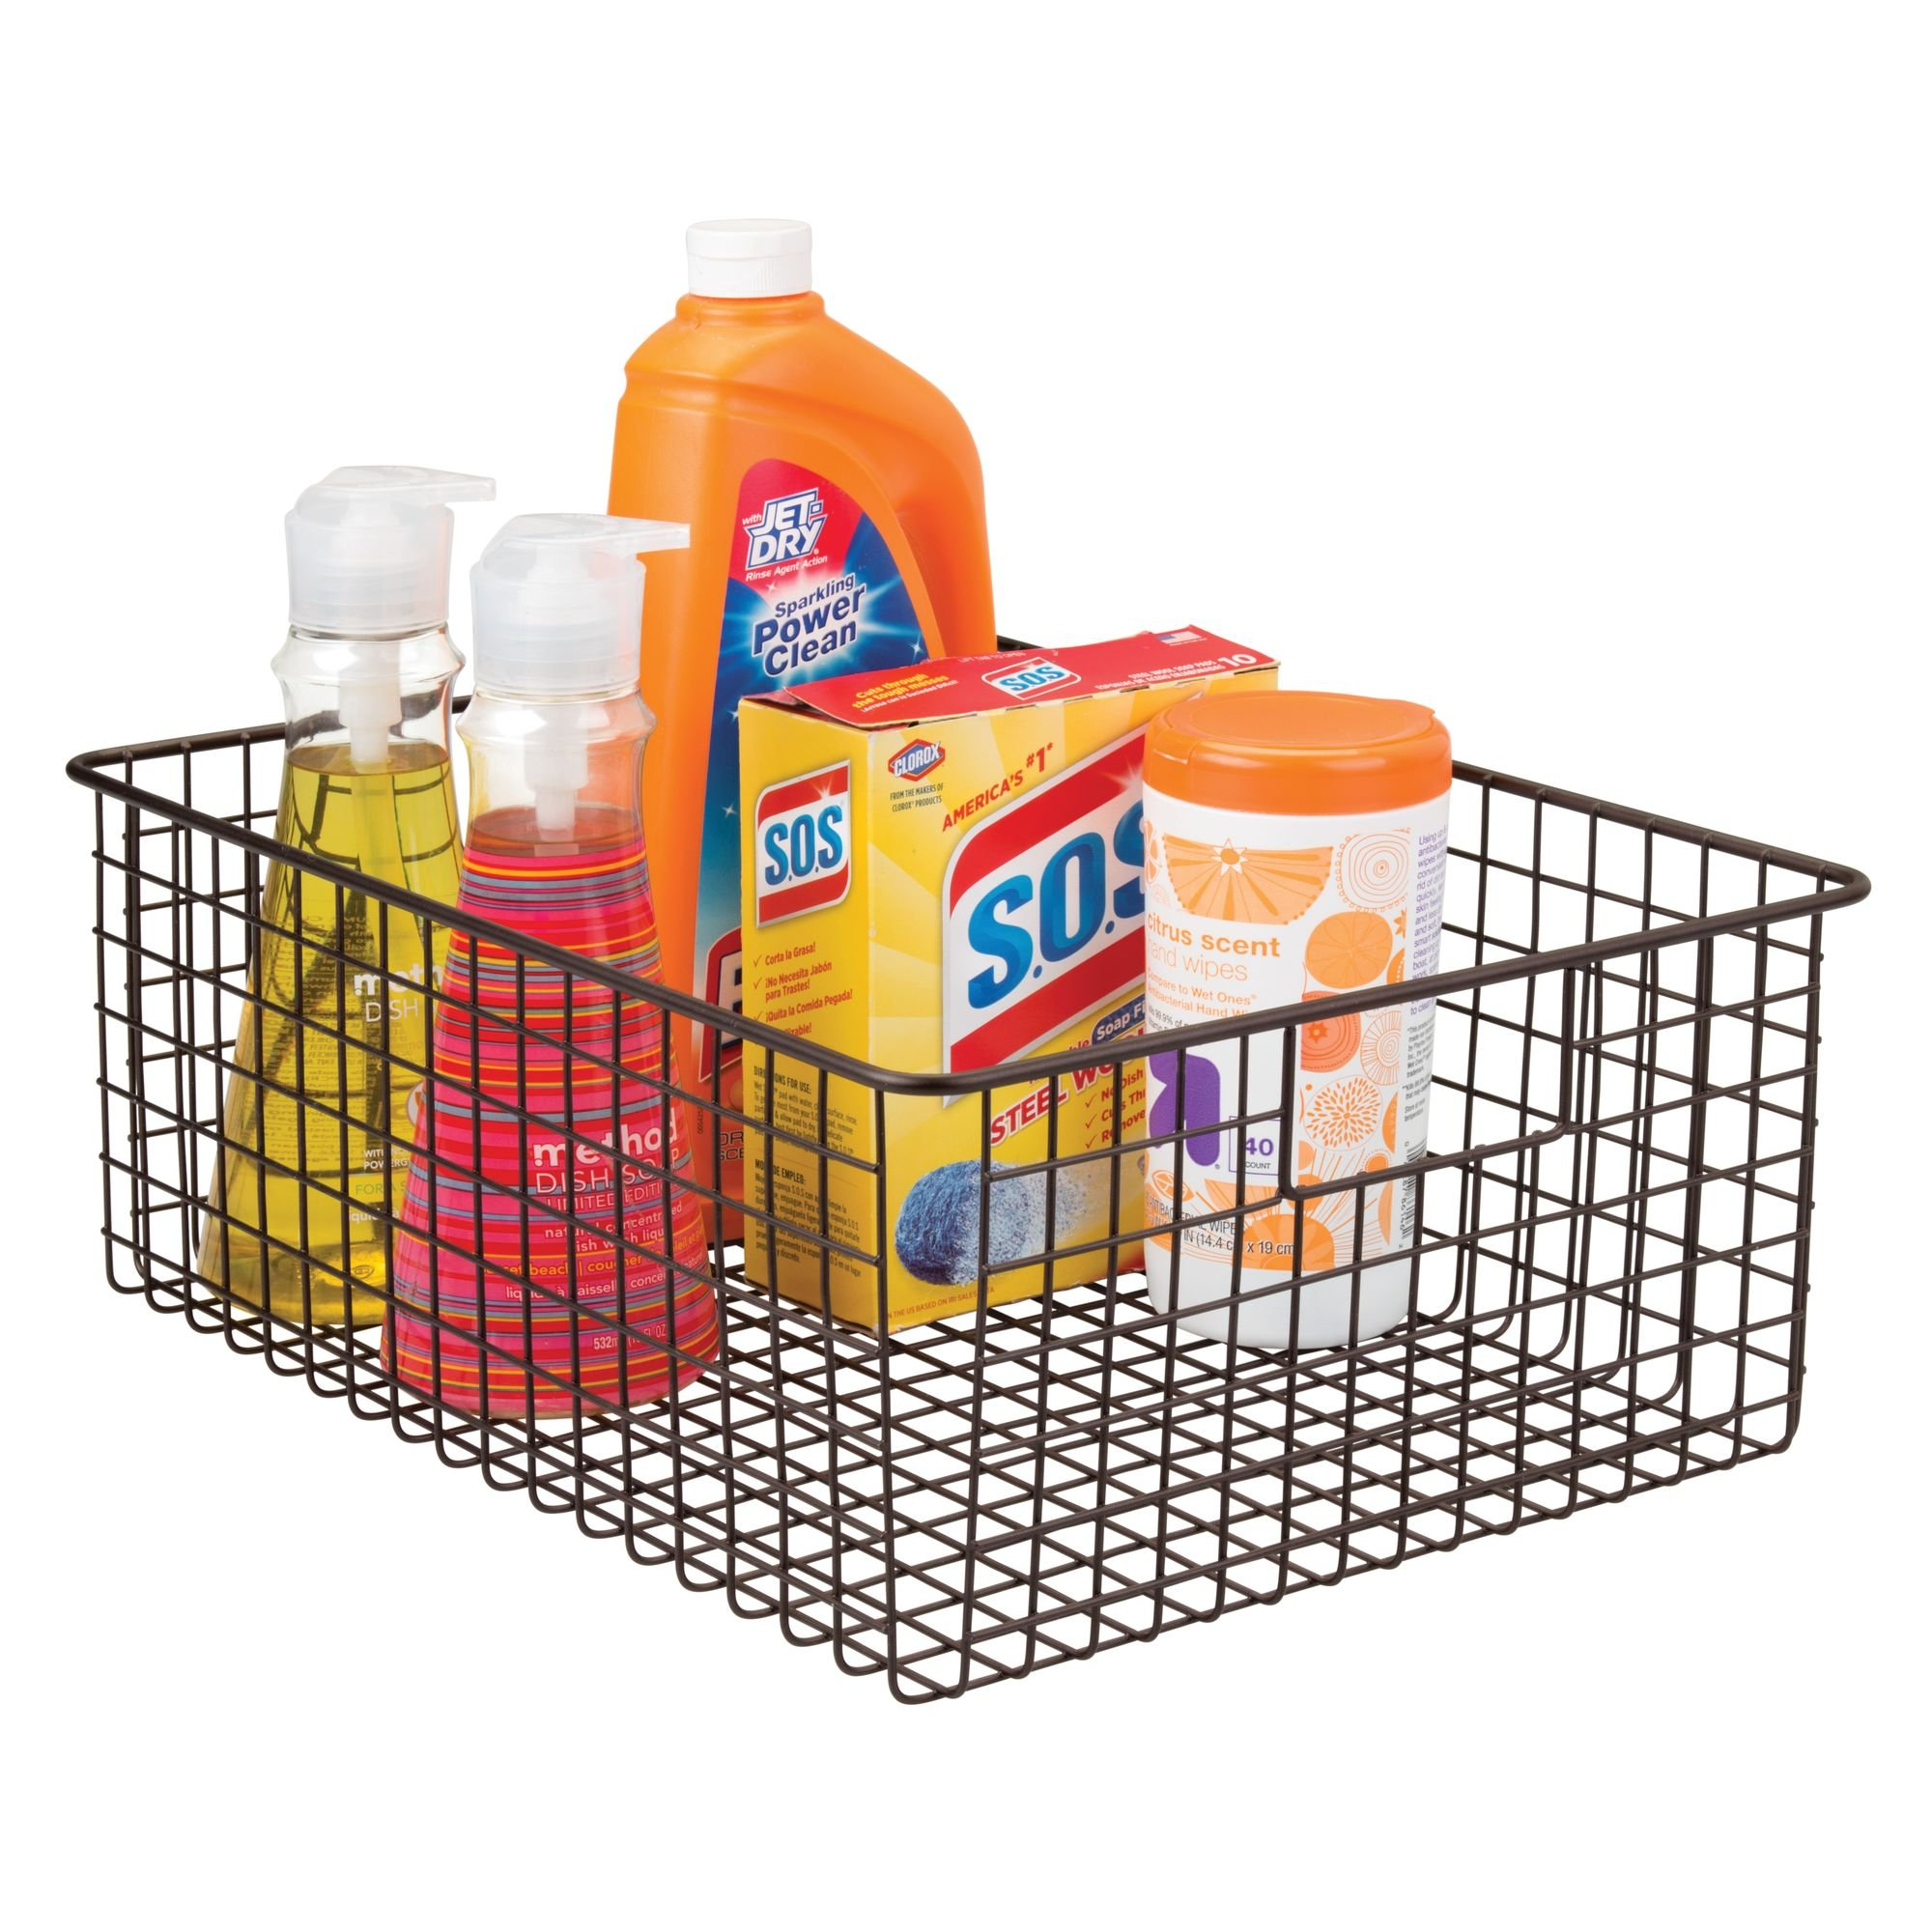 mDesign Wire Organizing Storage Basket with Built-In Handles - 16'' x 12'' x 6'', Bronze by mDesign (Image #3)